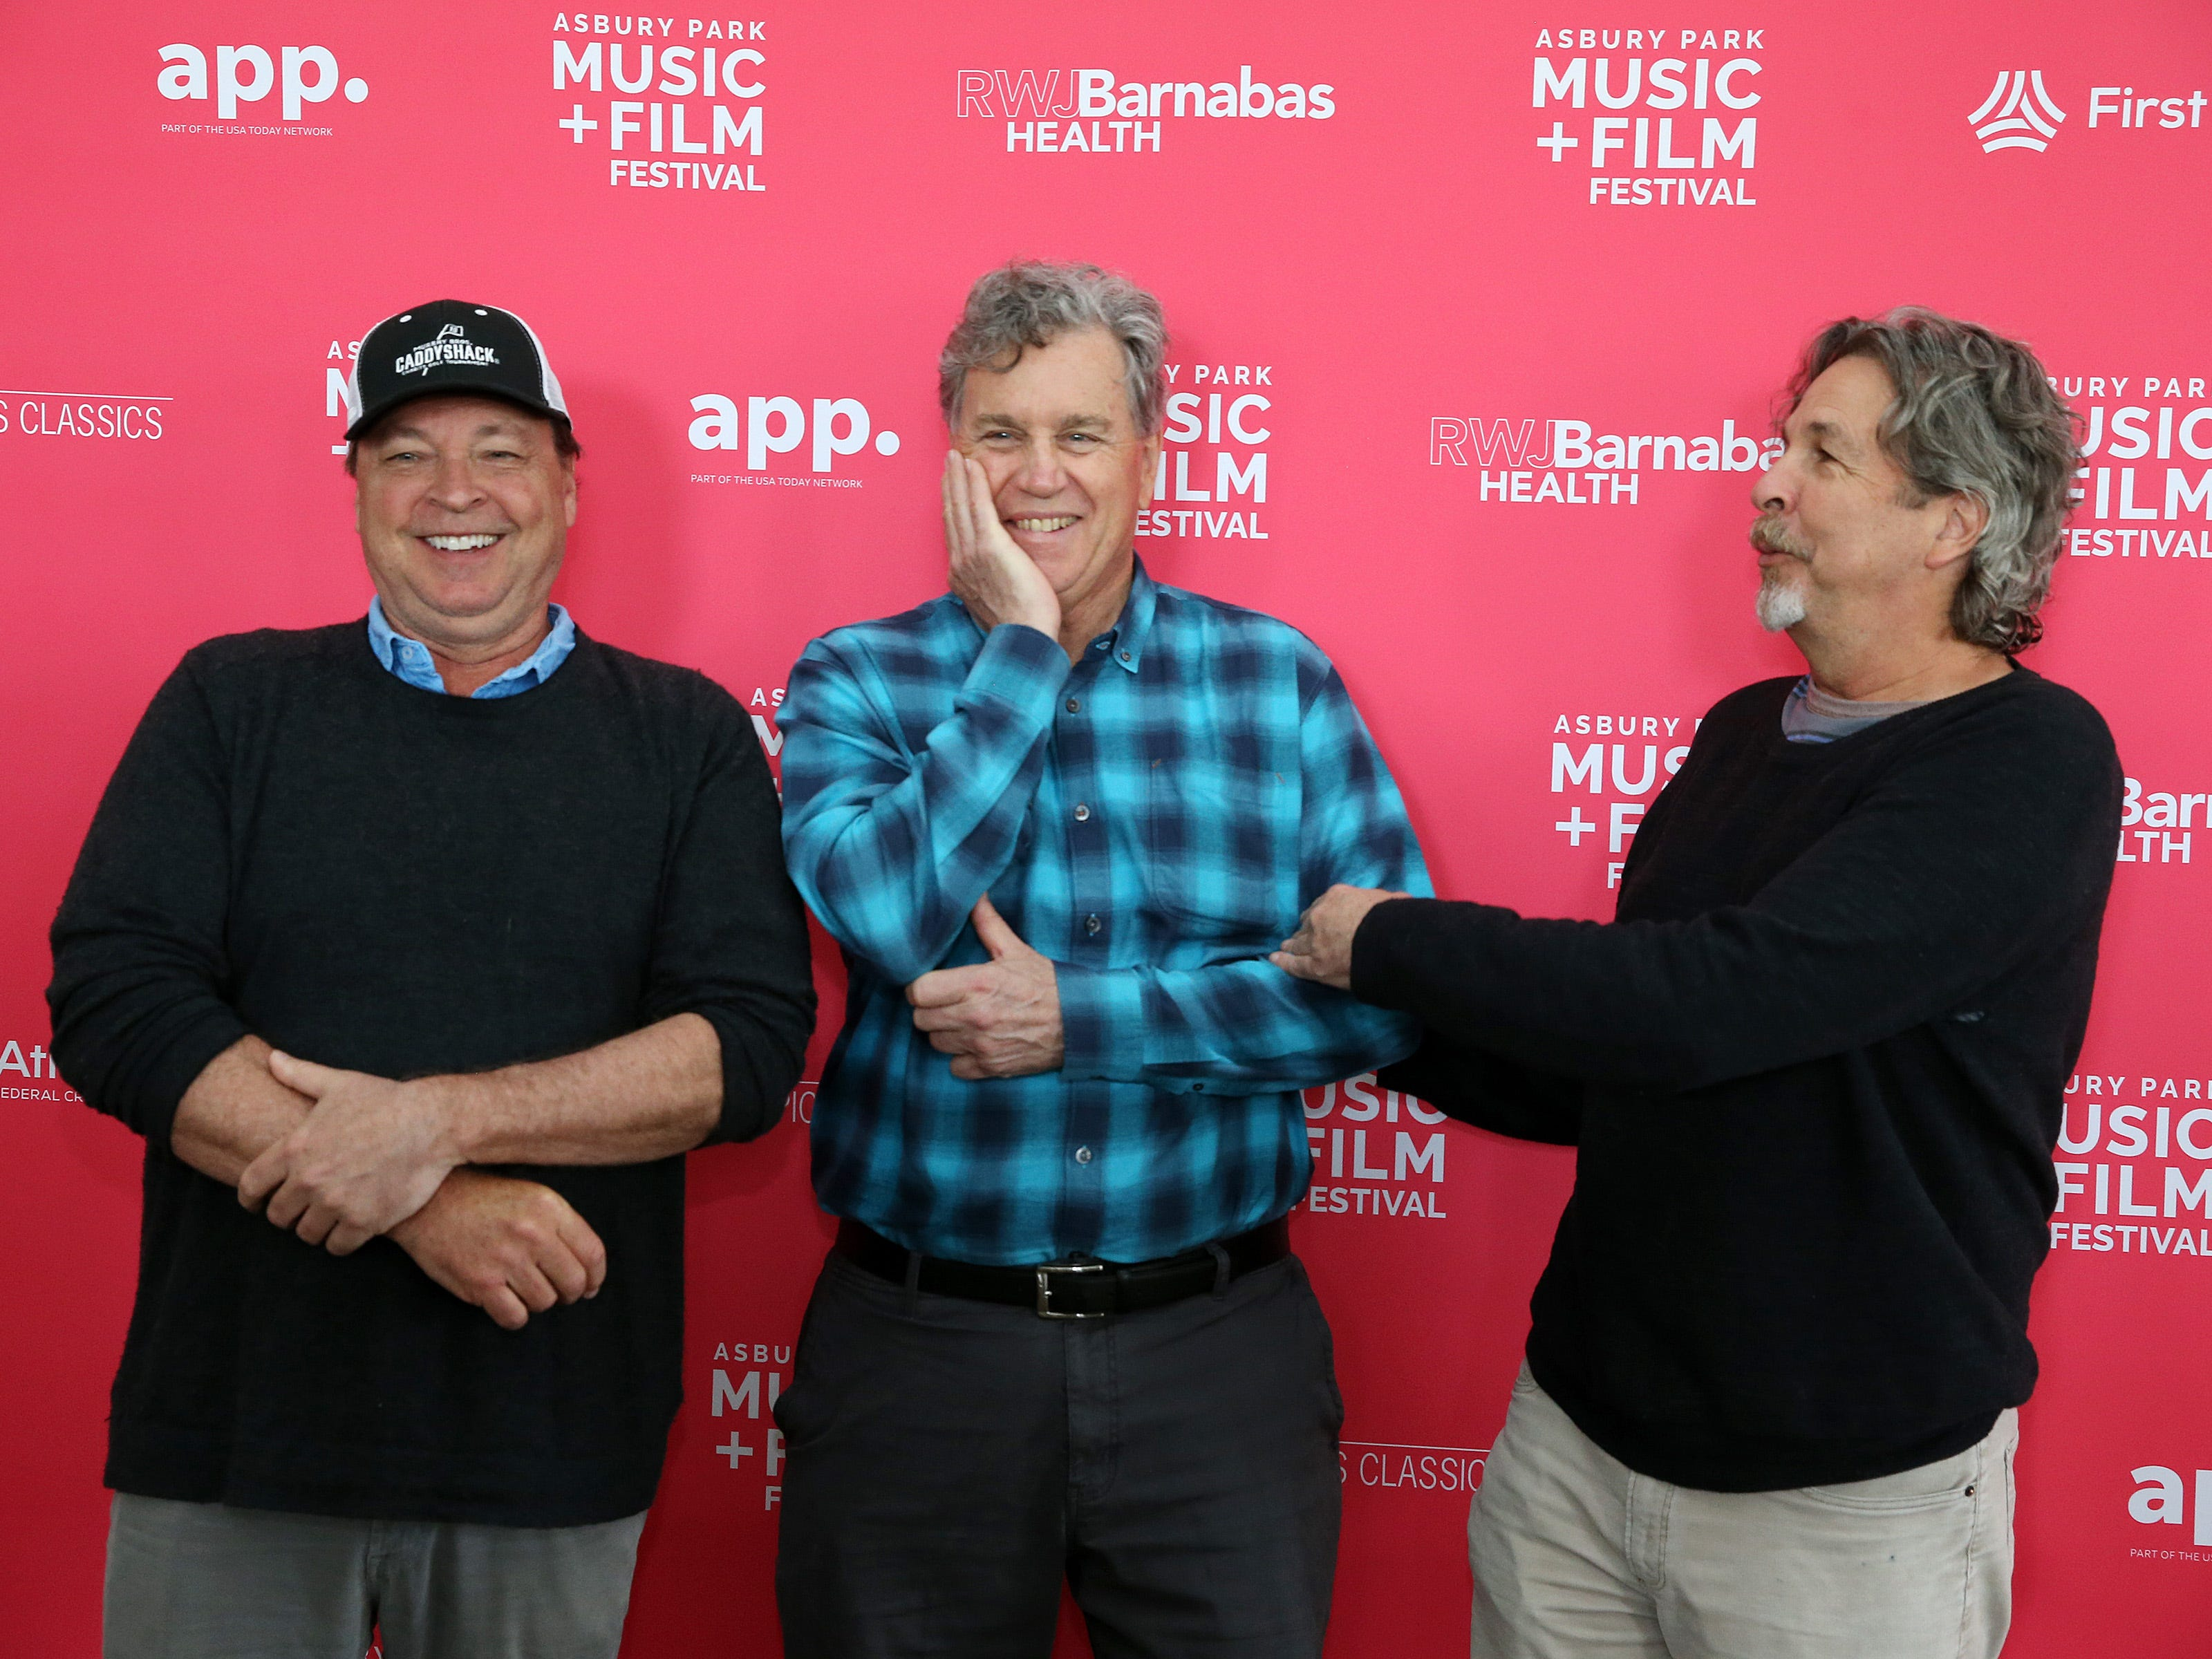 Bobby and Peter Farrelly pose with (center) Tom Bernard, co-chair of APMFF and co-president and co-founder of Sony Pictures Classics, as they greet the media and members of the APMFF advisory board at the Berkeley Oceanfront Hotel during the Asbury Park Music and Film Festival in Asbury Park, NJ Sunday, April 28, 2019.  #APMFF